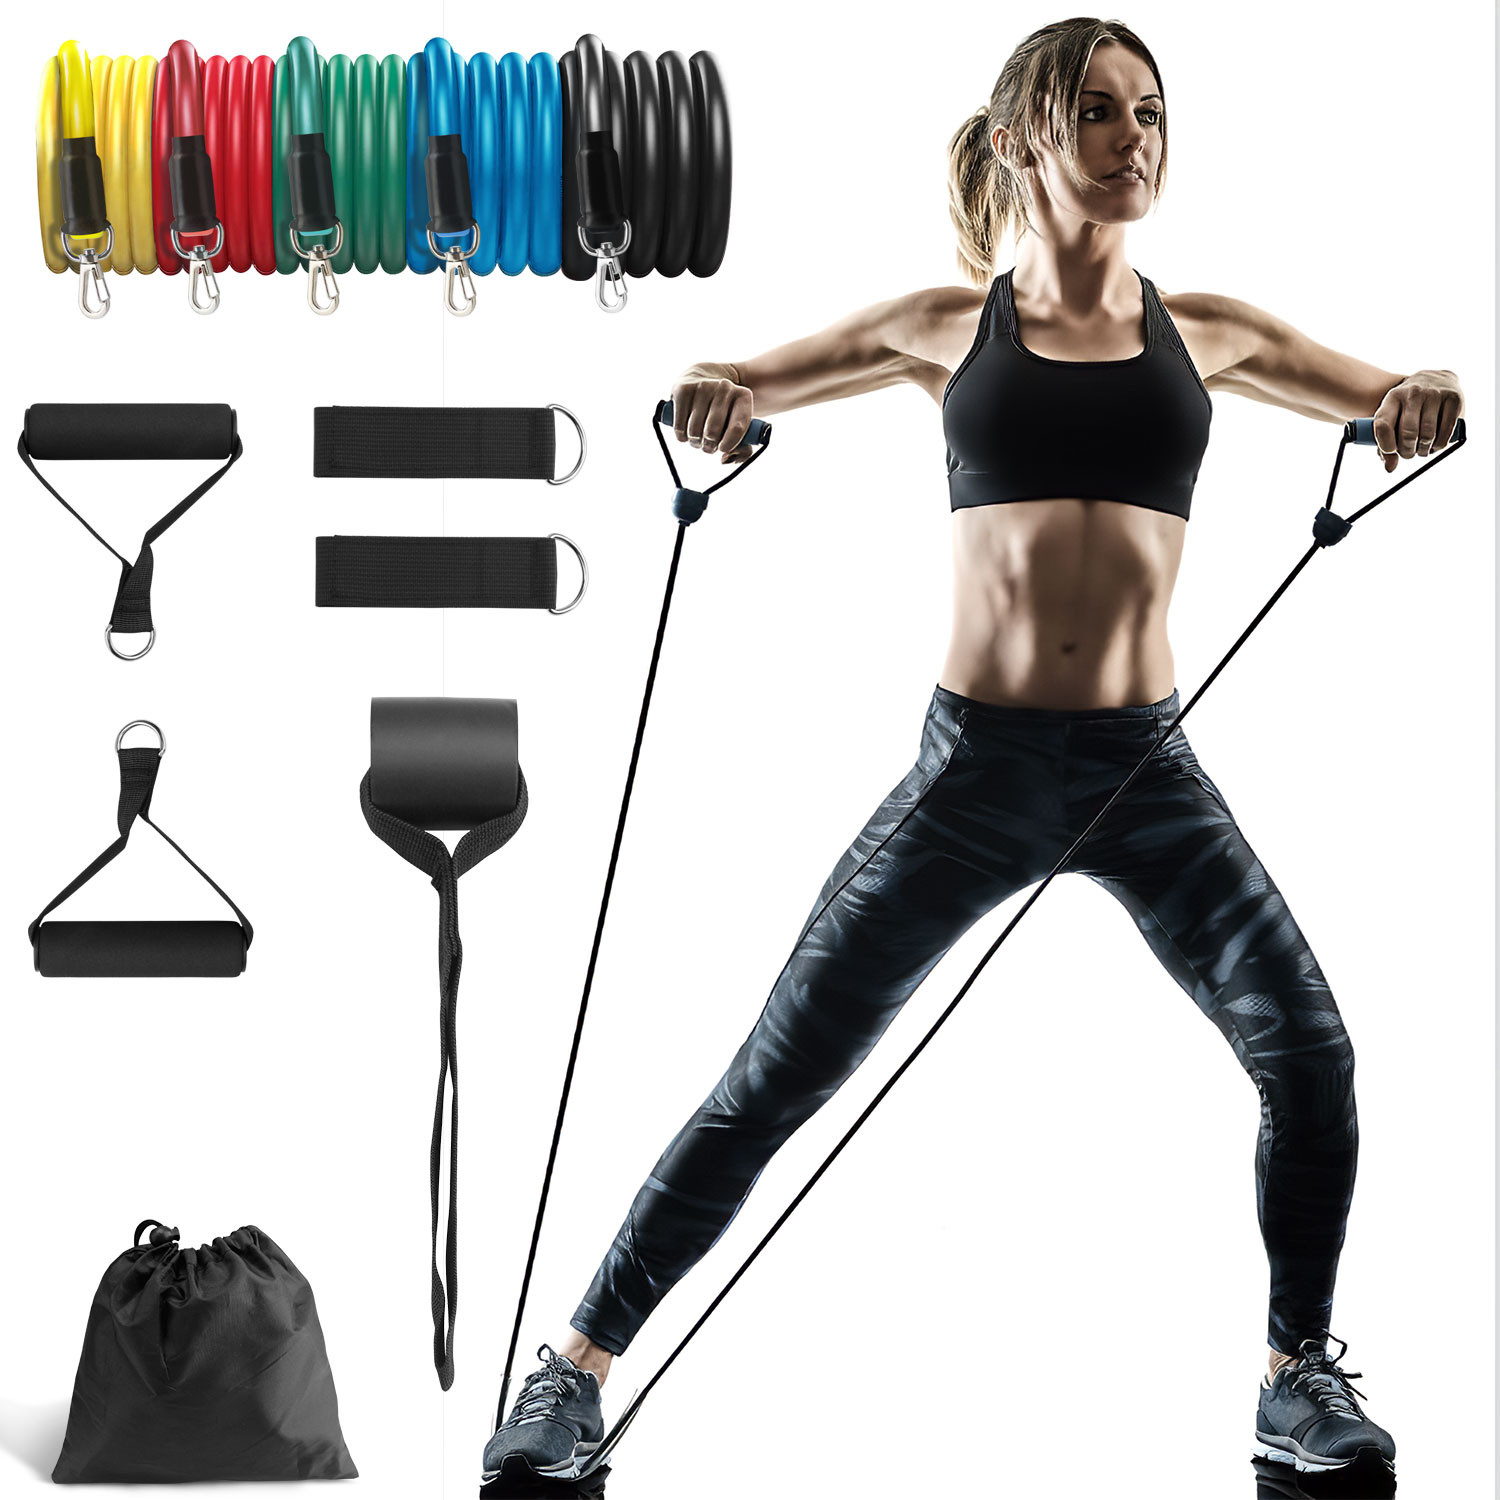 5PCS Exercise Bands Latex Resistance elastic Band-Pull Up Assist Fitness Gym